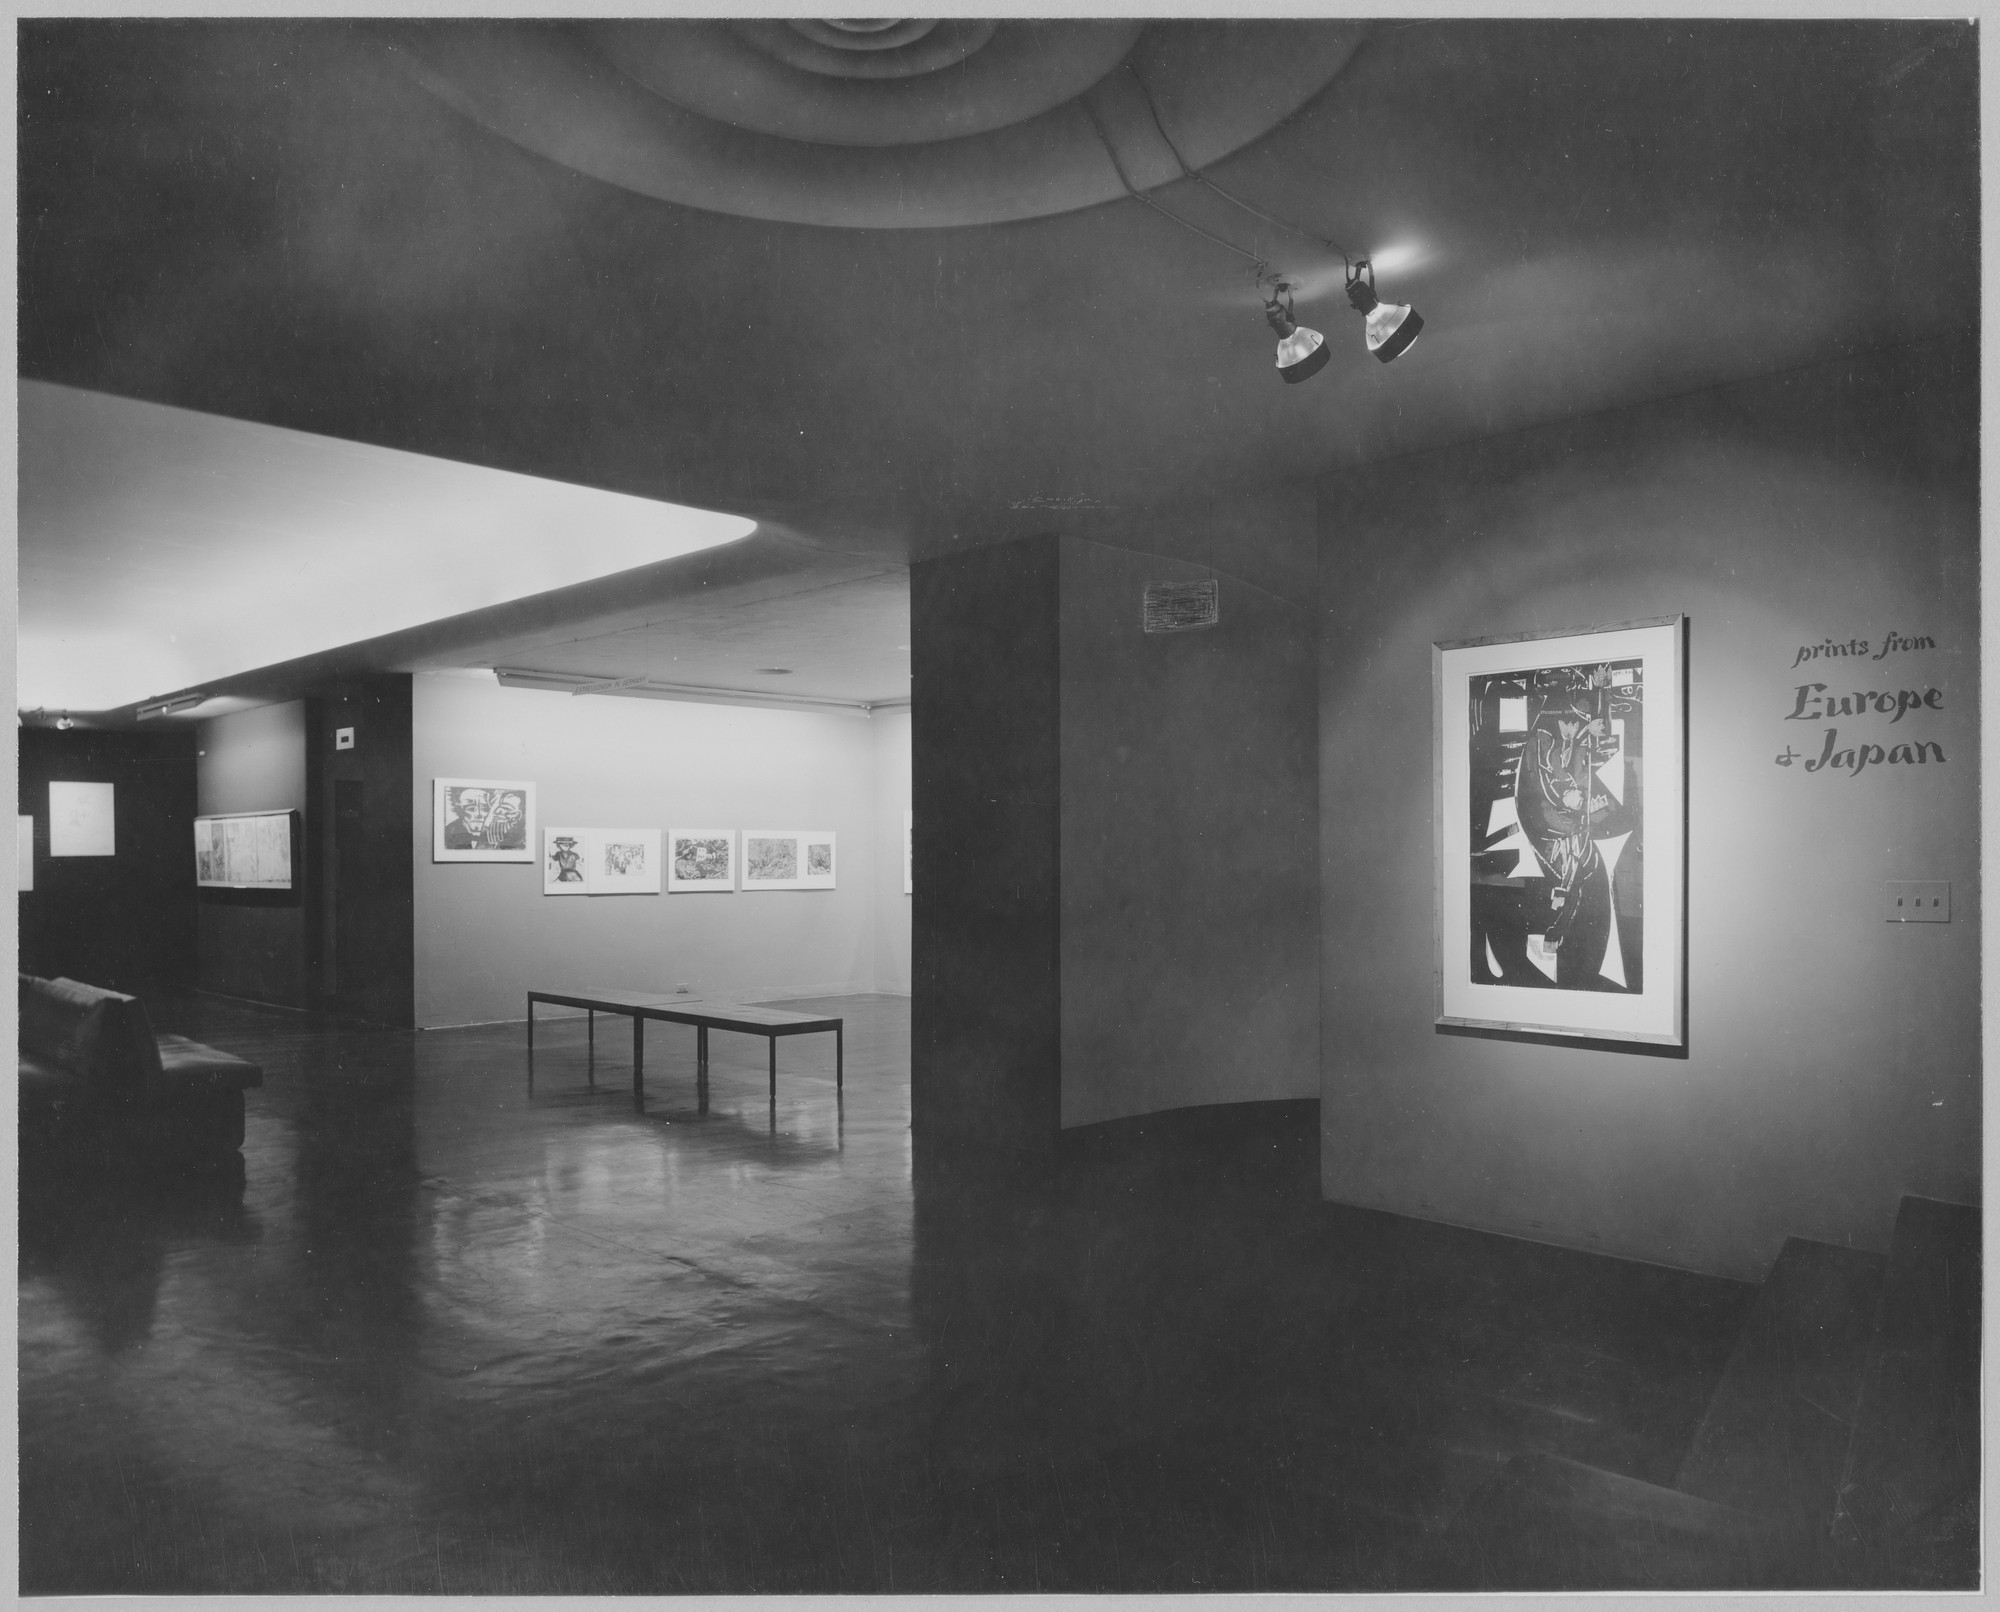 "Installation view of the exhibition, ""Prints from Europe and Japan; Etchings by Matisse."" May 4, 1955–May 31, 1955. Photographic Archive. The Museum of Modern Art Archives, New York. IN578.1. Photograph by Adolph Studly."